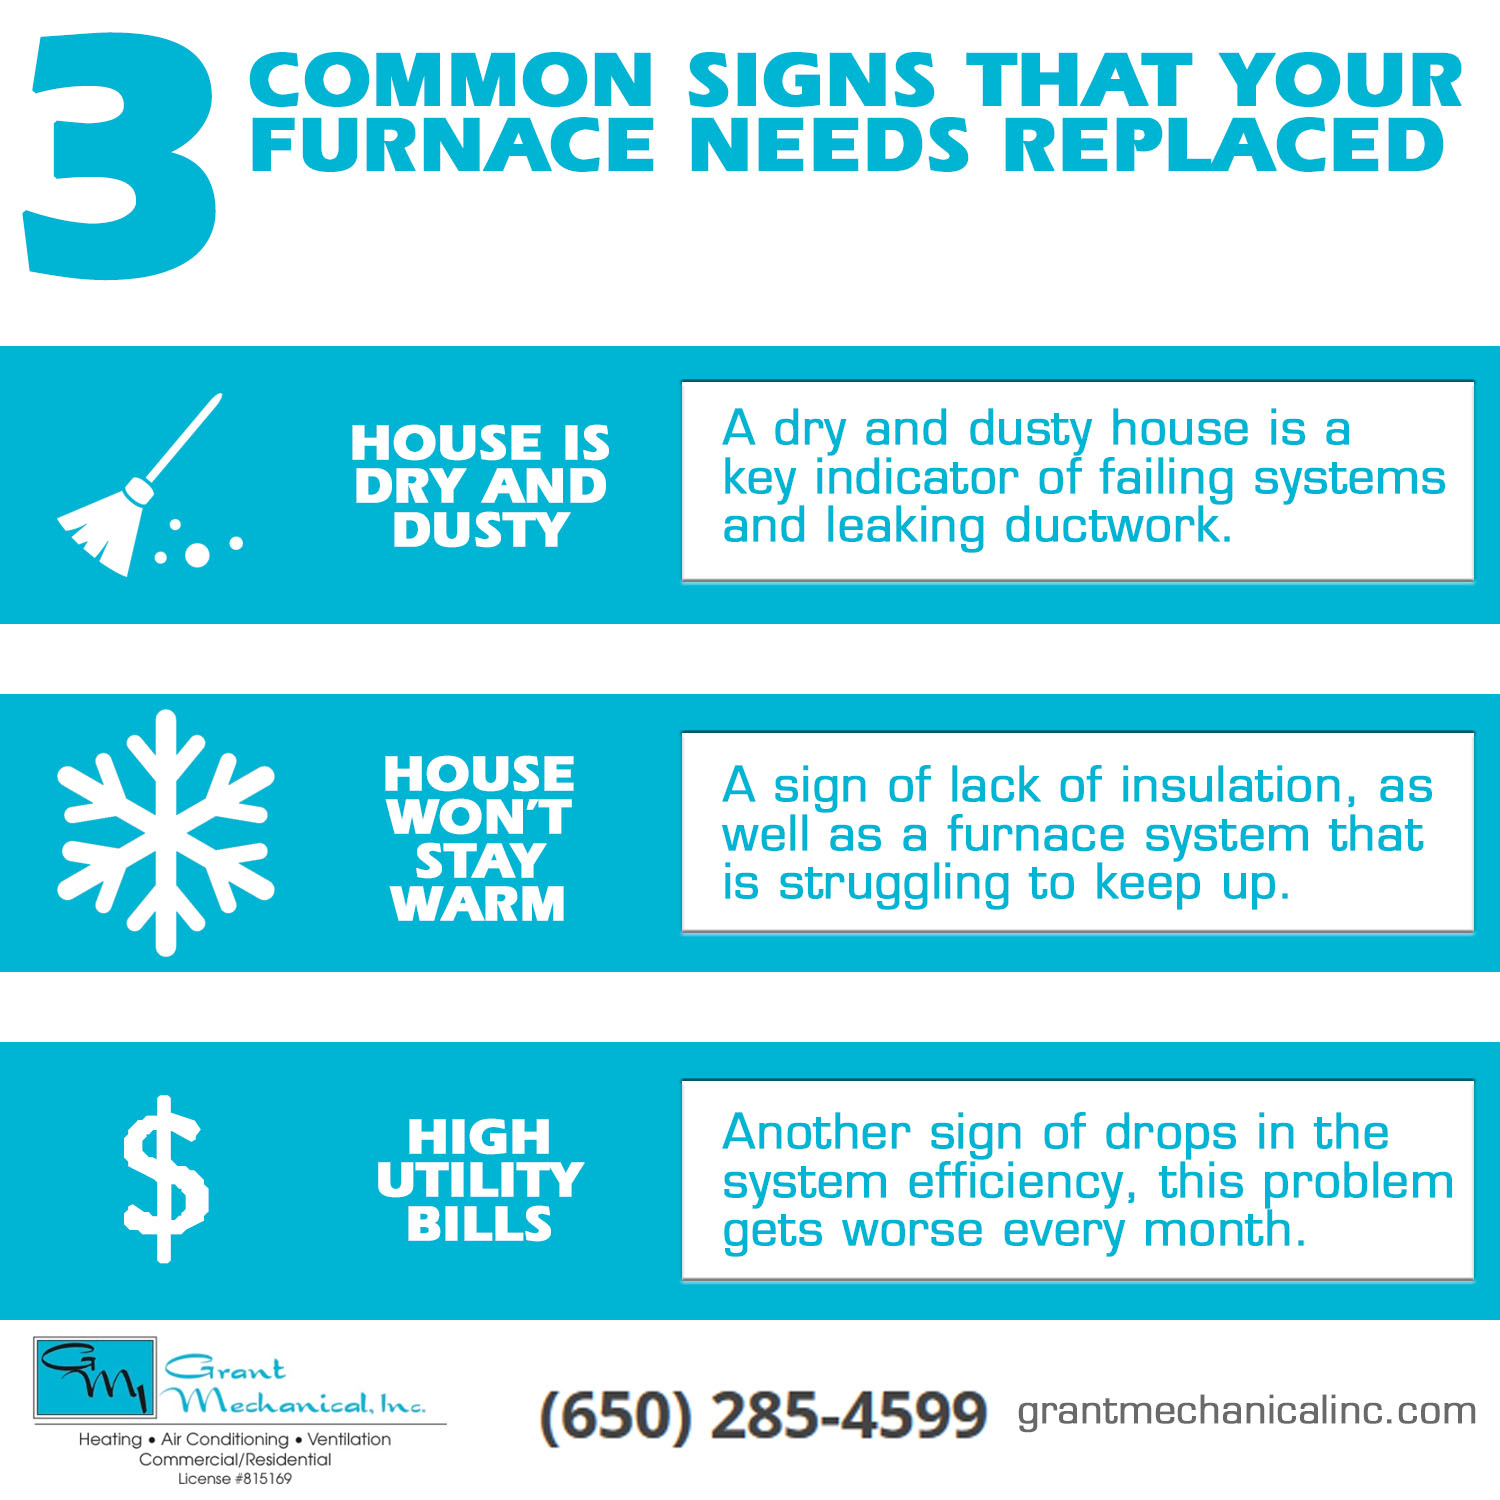 3 Common Signs that your Furnace needs Replaced